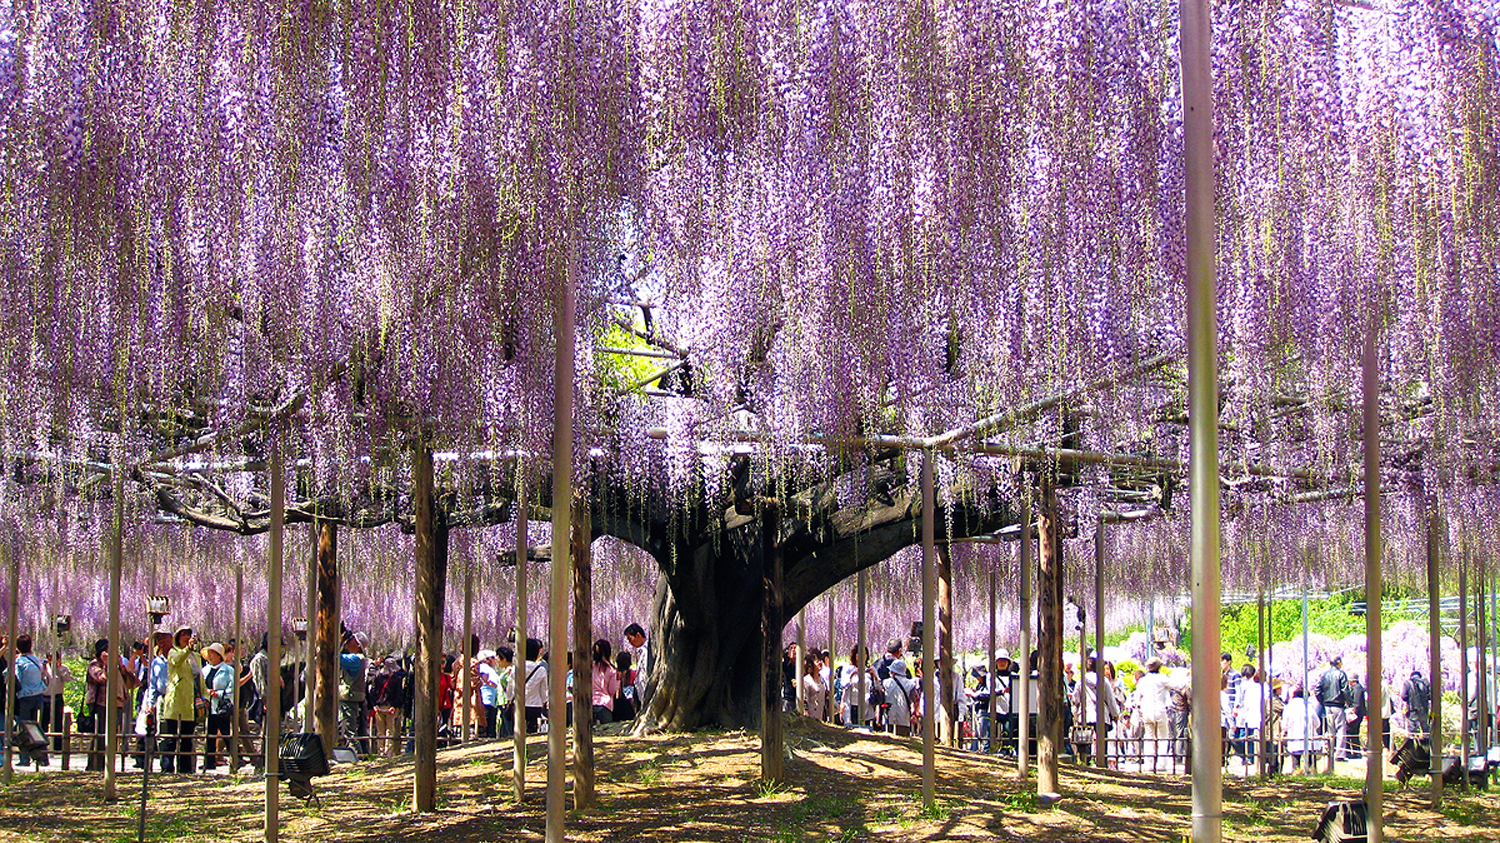 This Flower Park Is Home To The Oldest Wisteria Plant In Japan